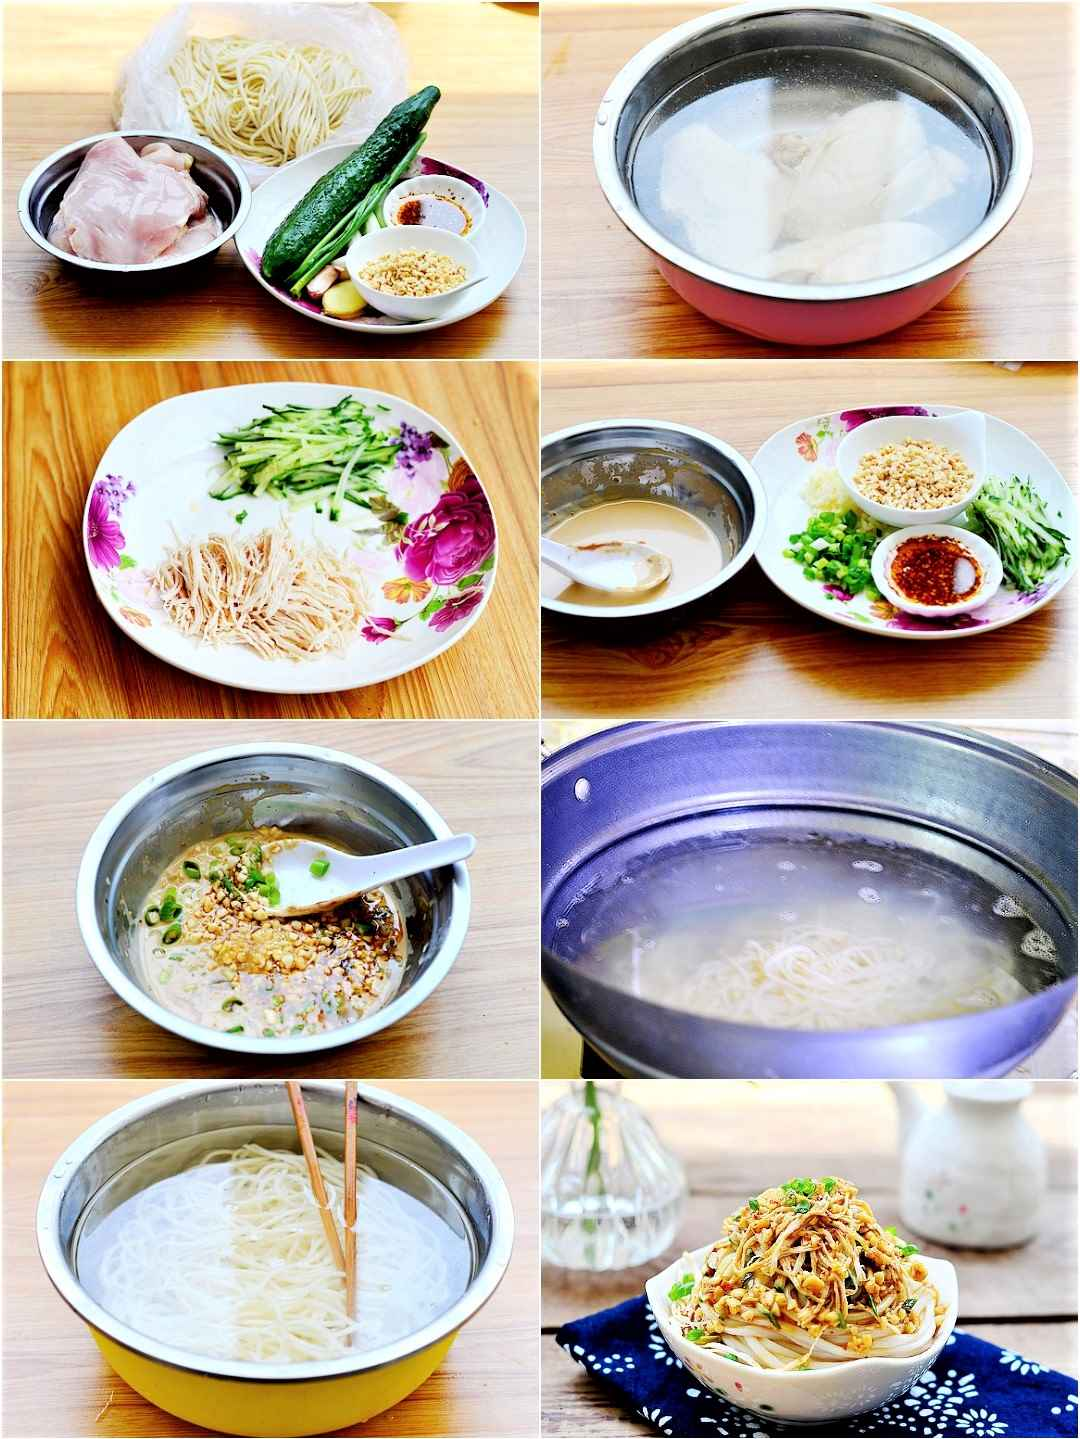 Cold noodle salad recipes recipes with pictures step by step